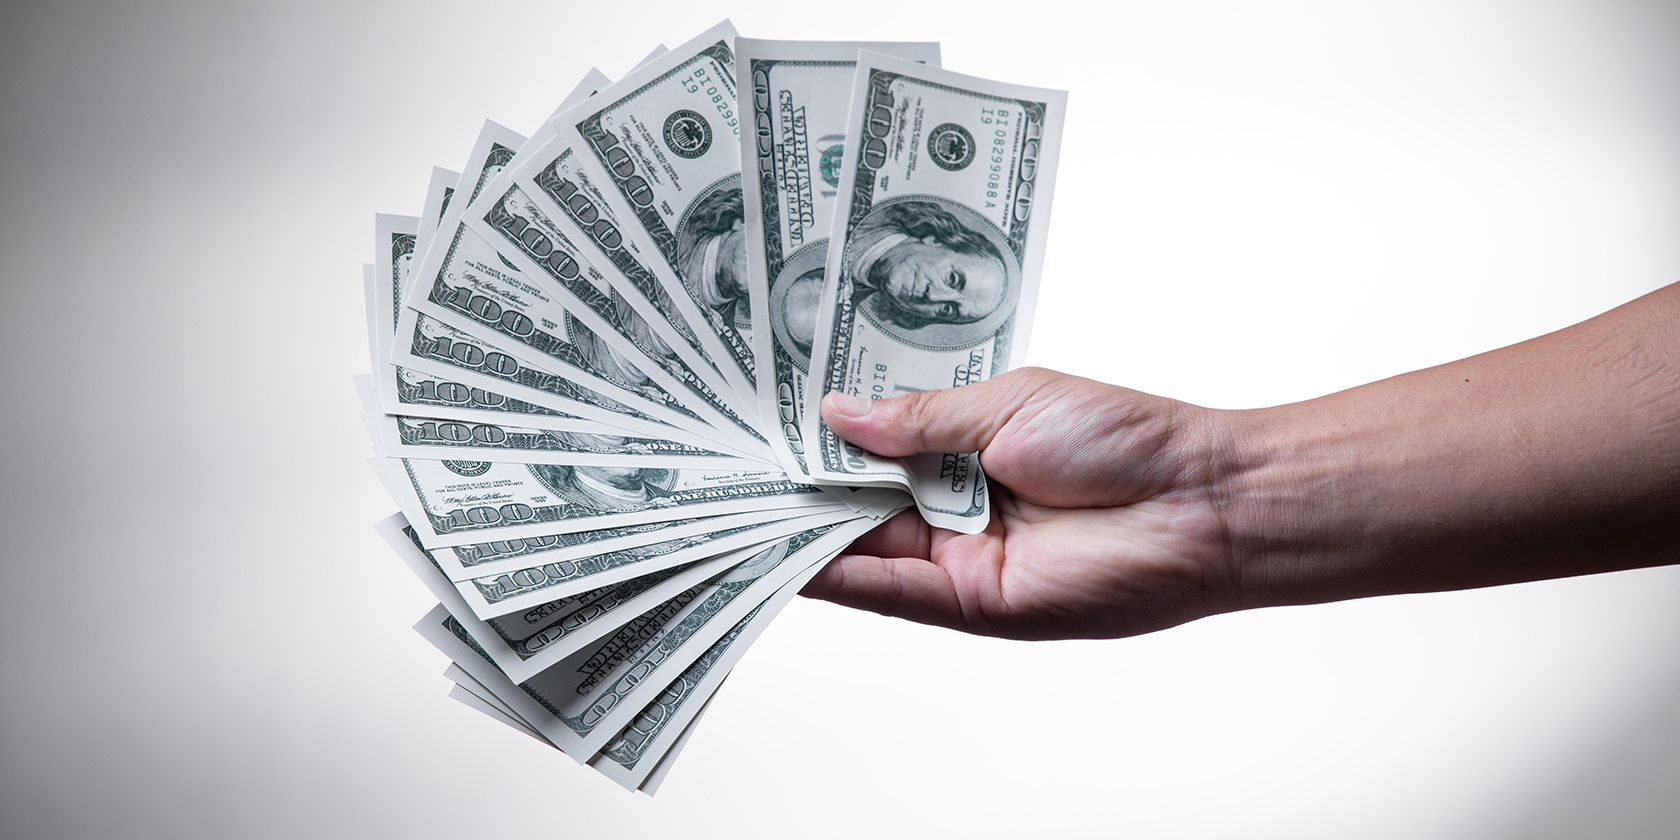 How to Make Money Playing Games: 7 Ways